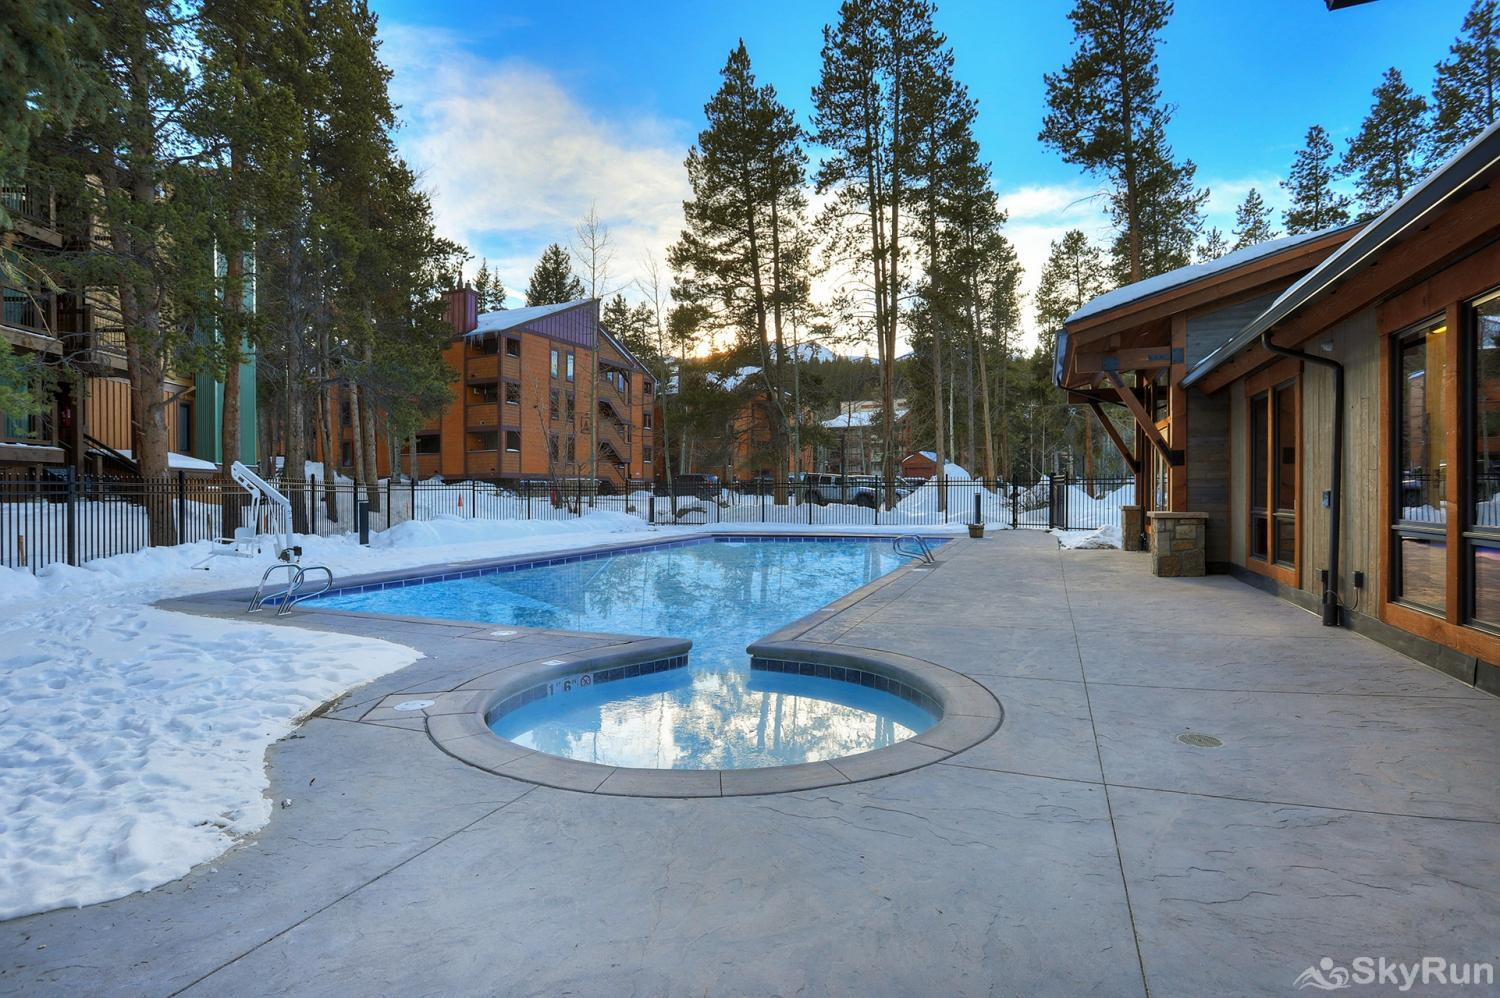 Tannenbaum by the River Relax and unwind in the outdoor heated pool & hot tubs